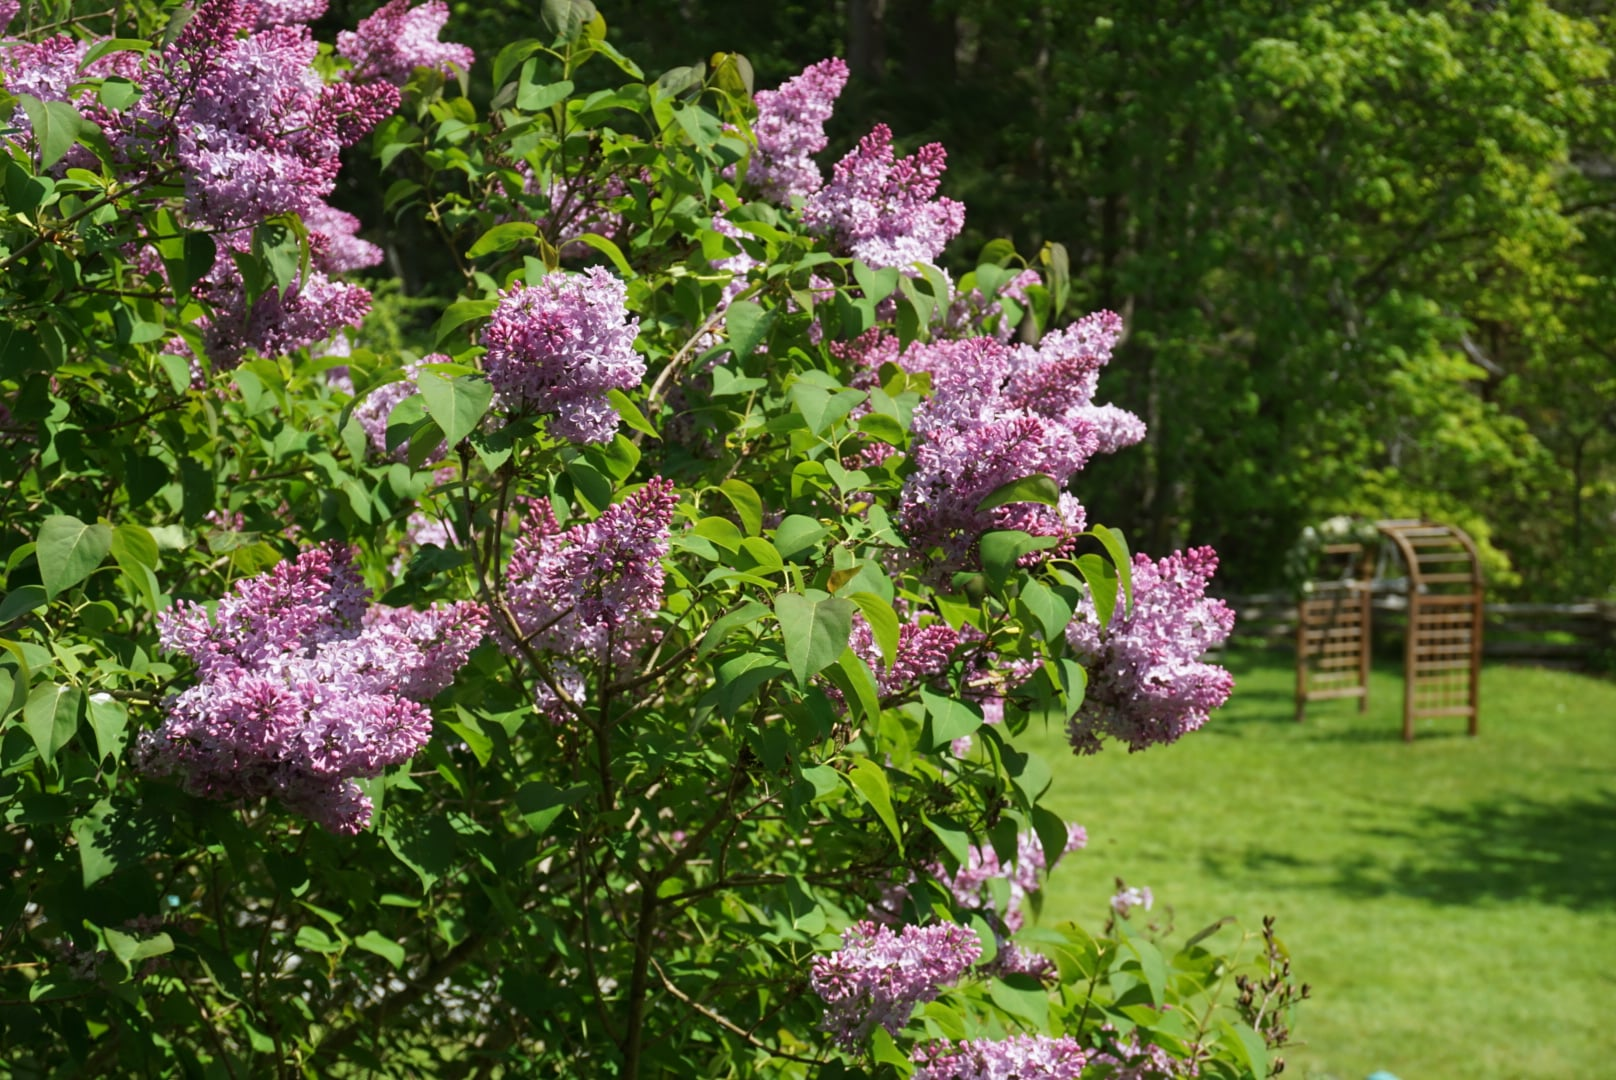 Lilacs With Lattice Arch In The Distance